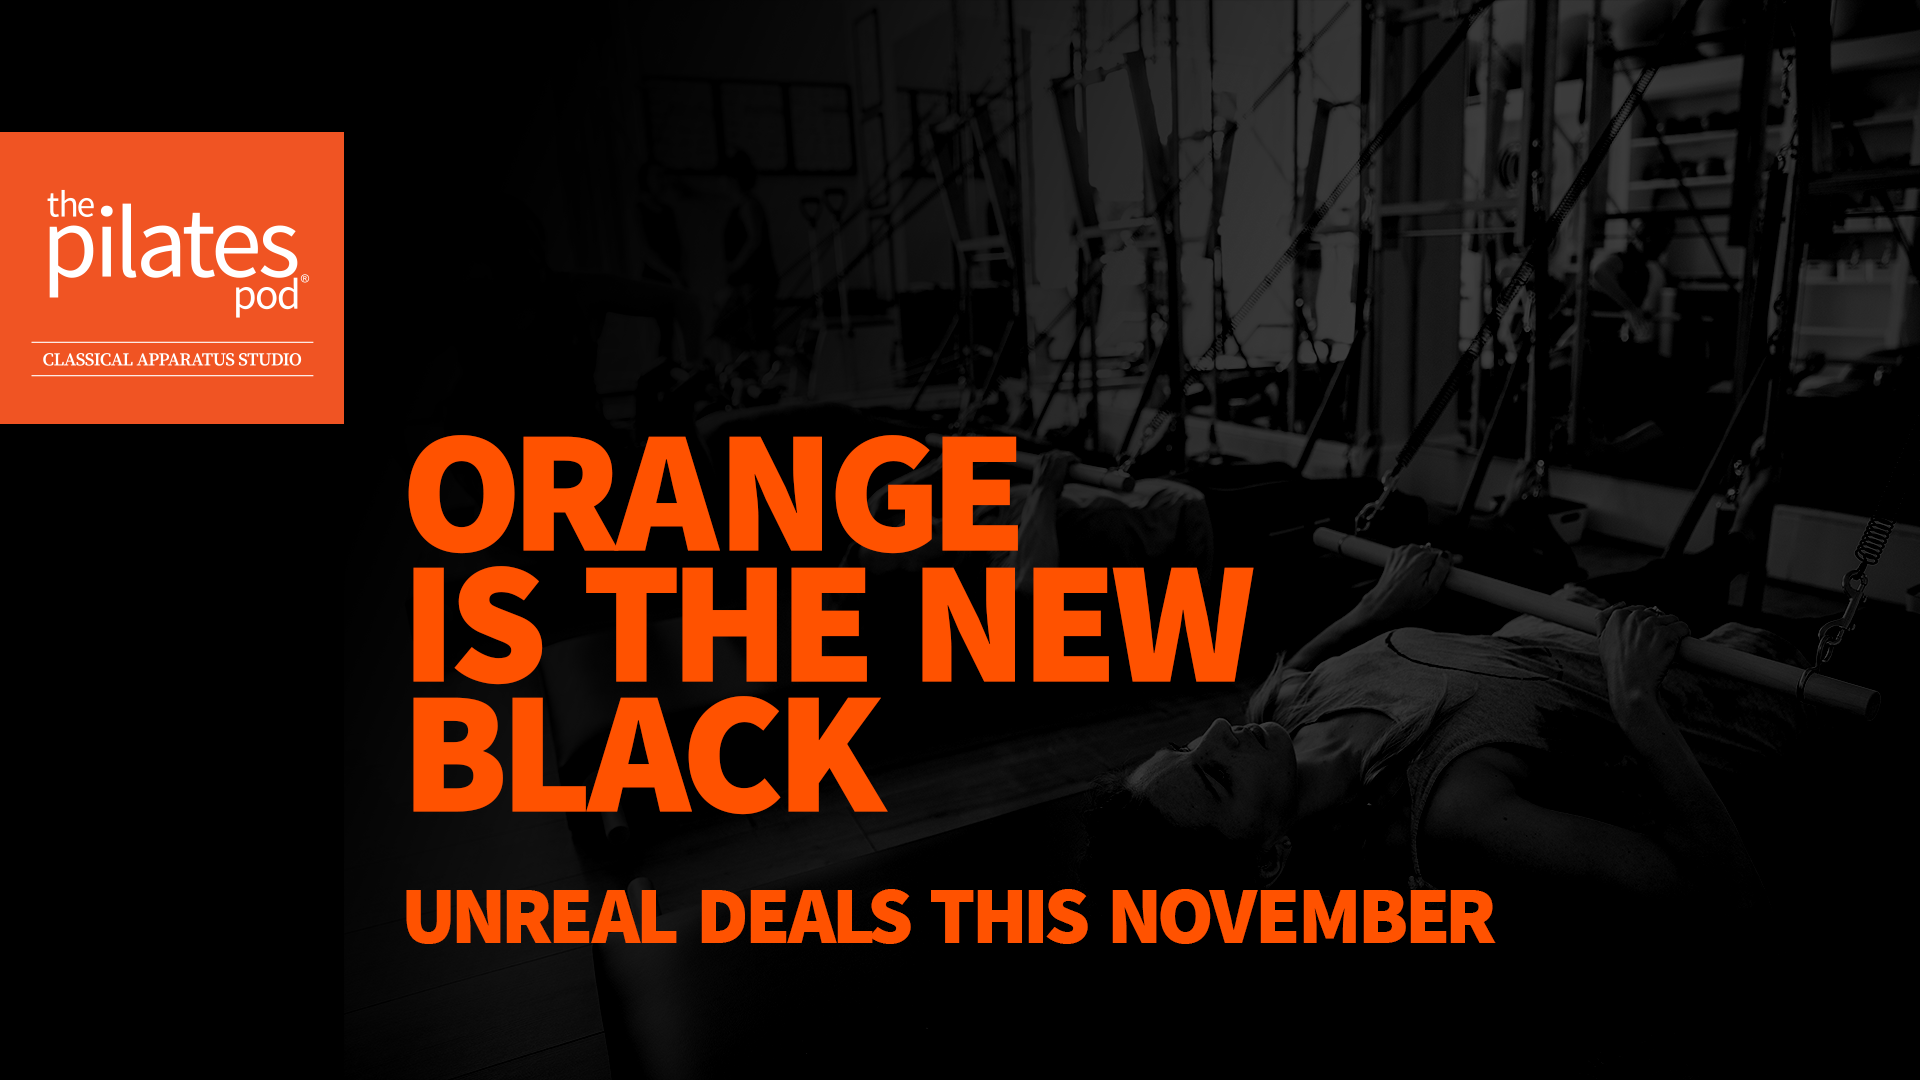 Orange is the new black - amazing November offers